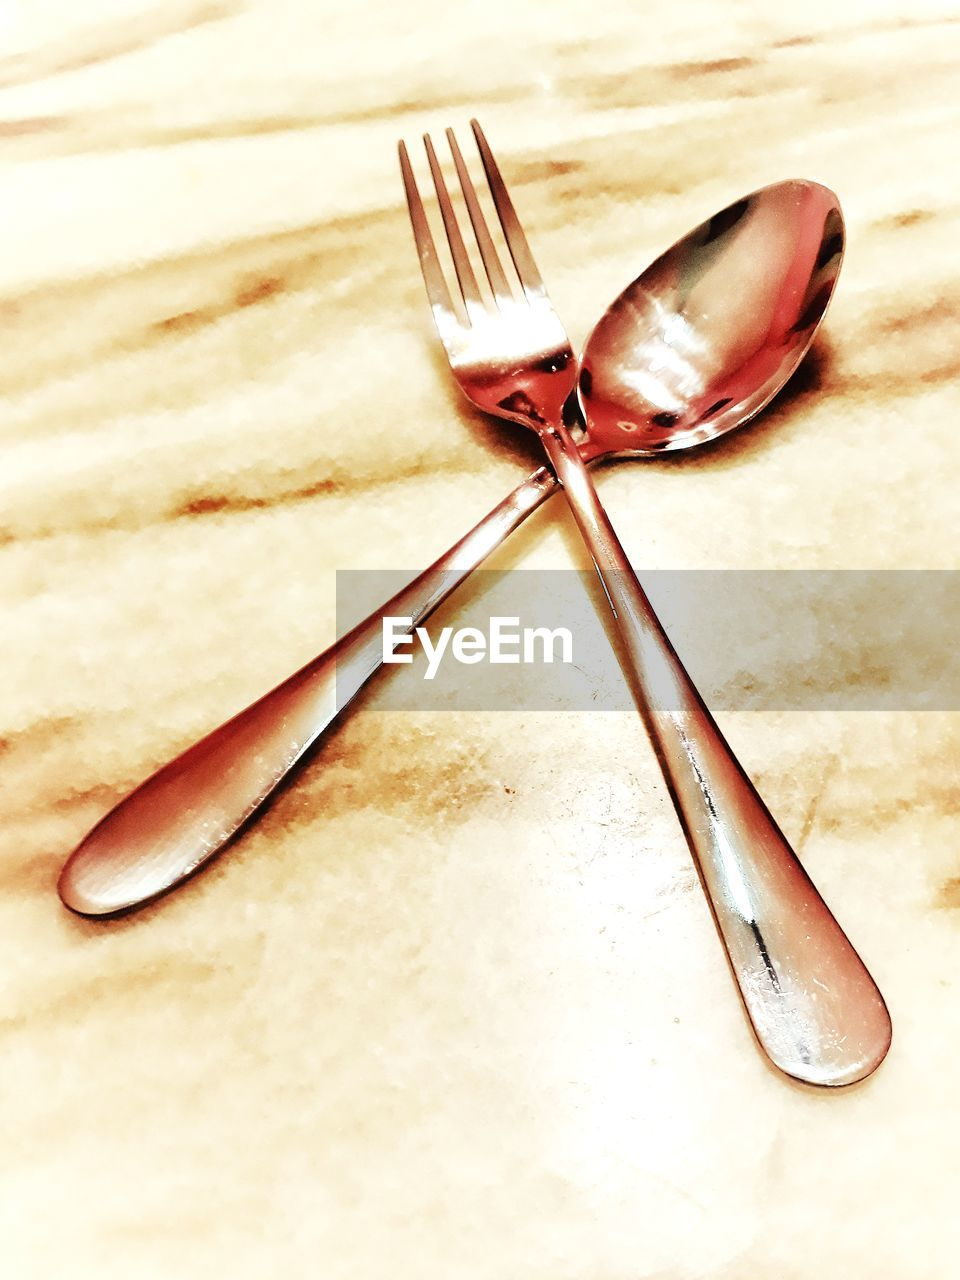 eating utensil, fork, kitchen utensil, table, close-up, still life, indoors, knife, food, metal, plate, no people, table knife, high angle view, food and drink, spoon, household equipment, silverware, freshness, butter knife, steel, alloy, silver colored, setting